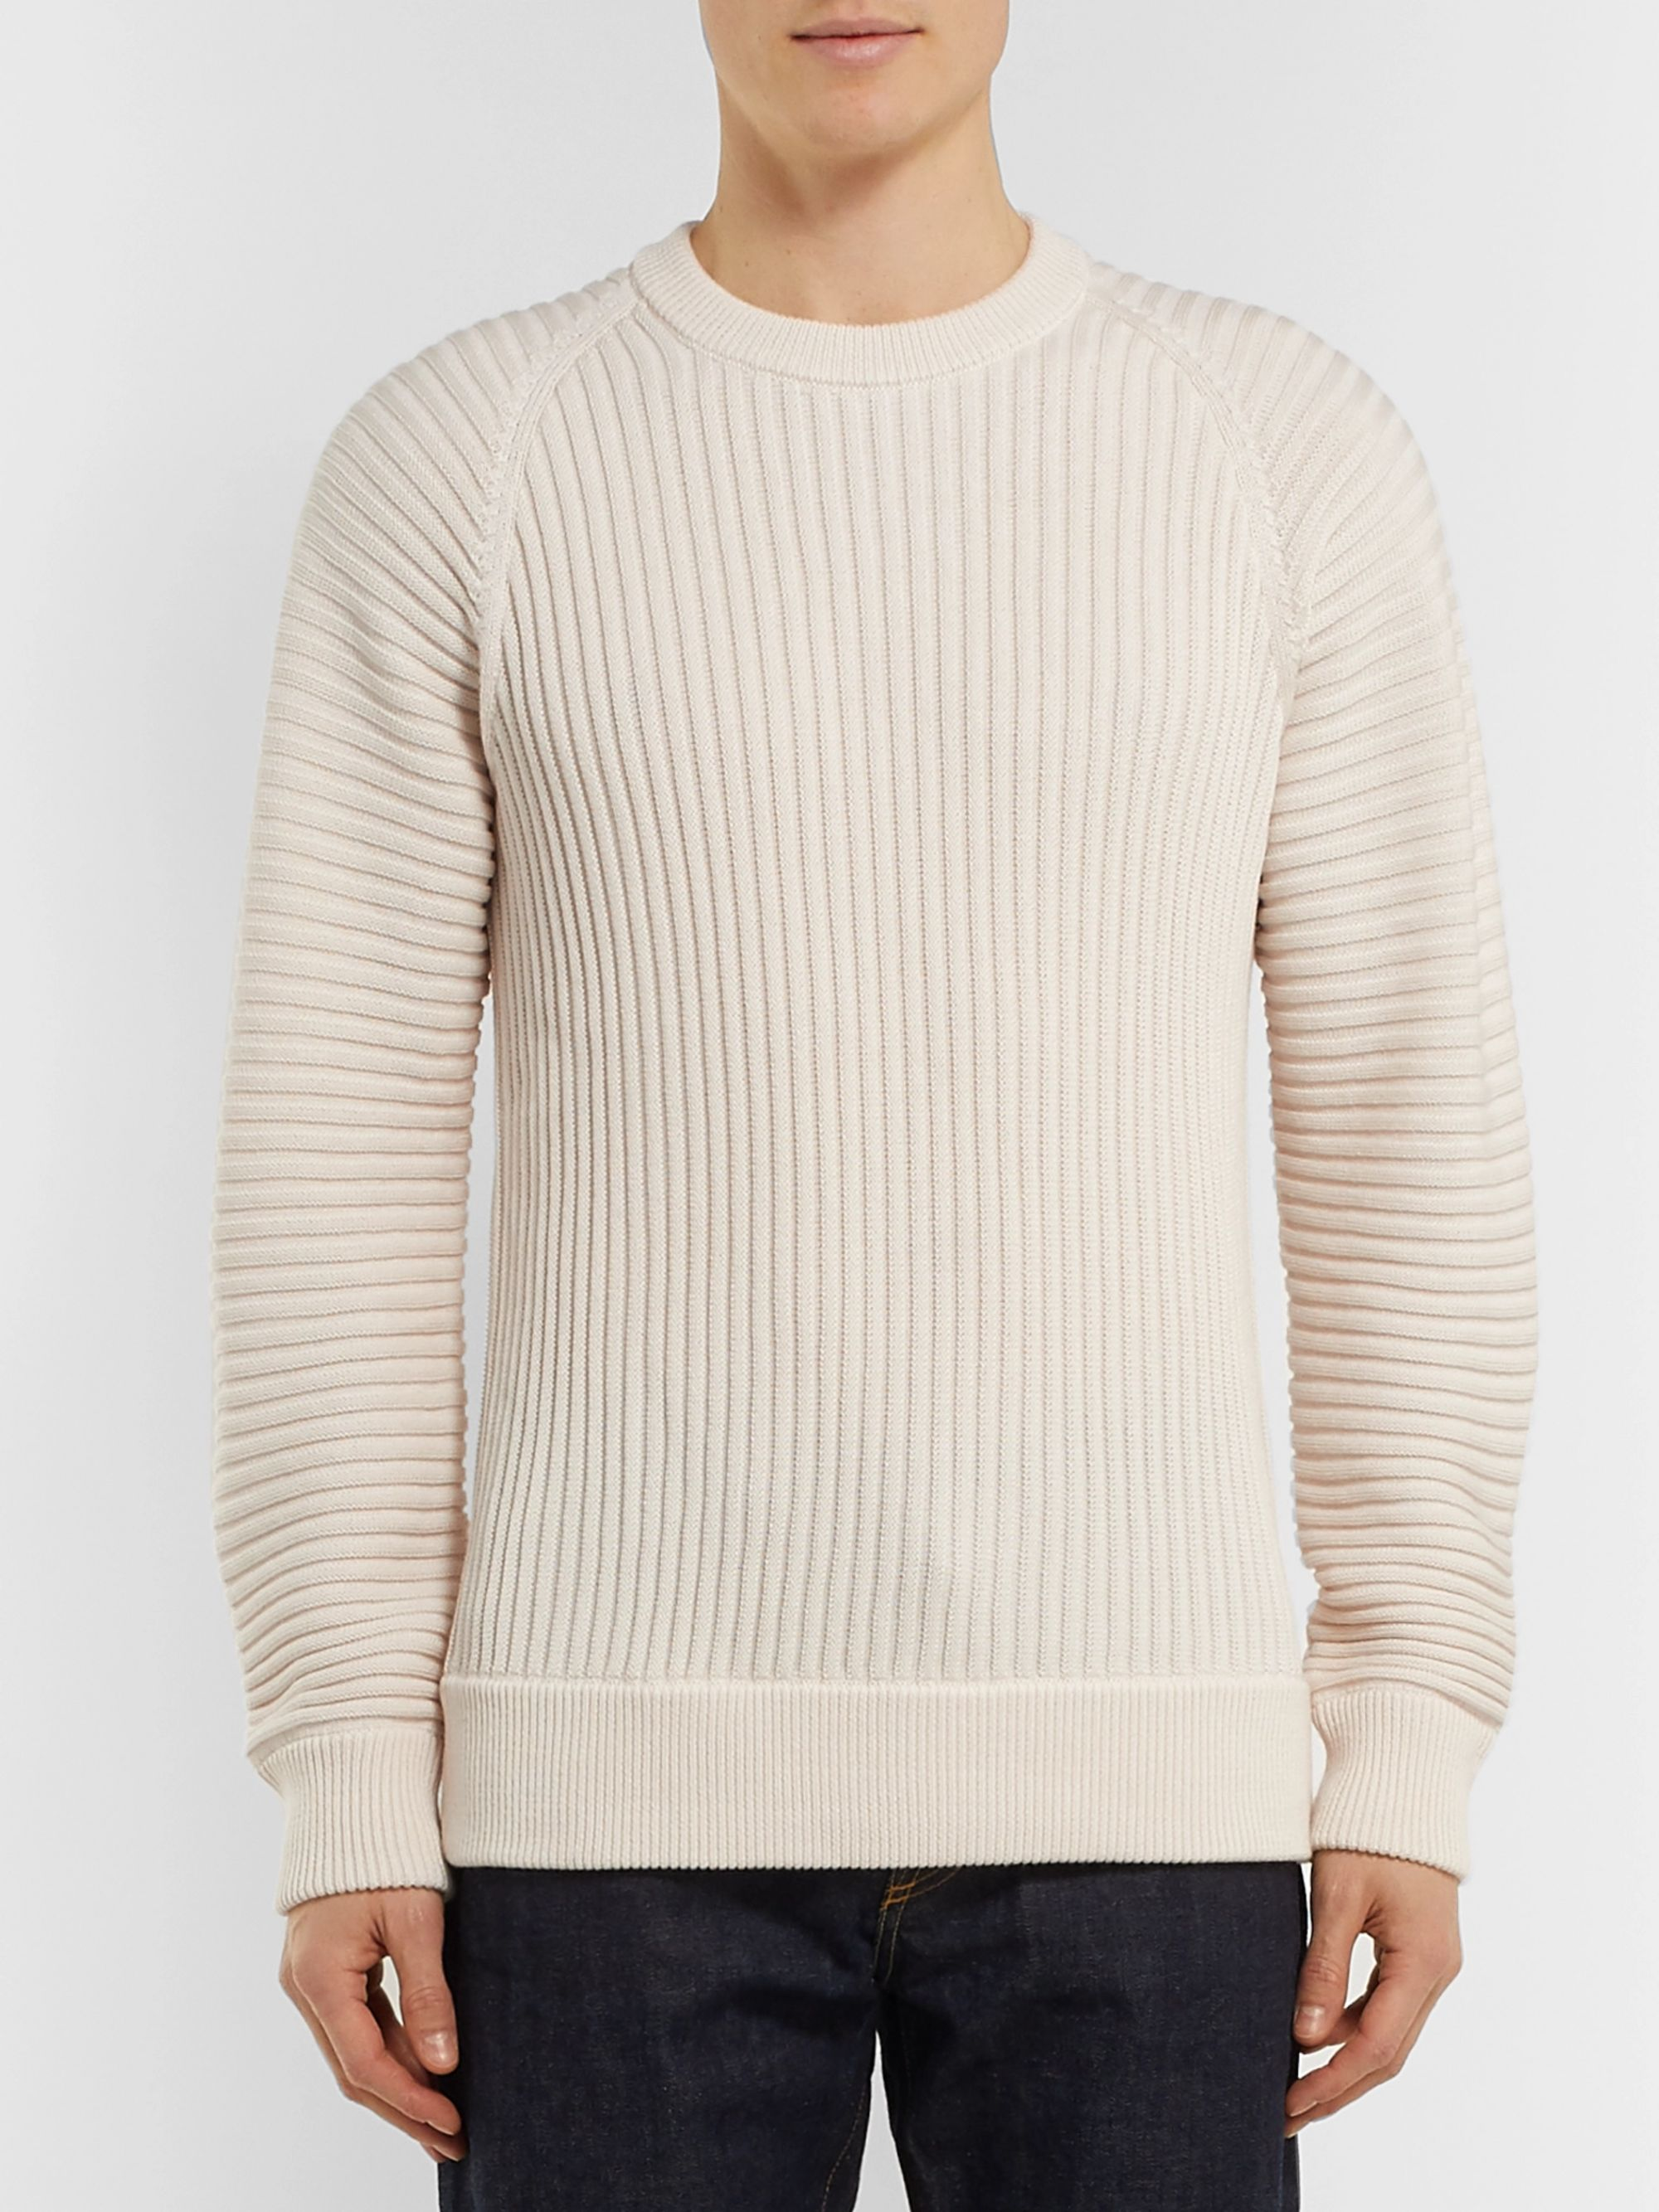 Mr P. Ribbed Merino Wool Sweater